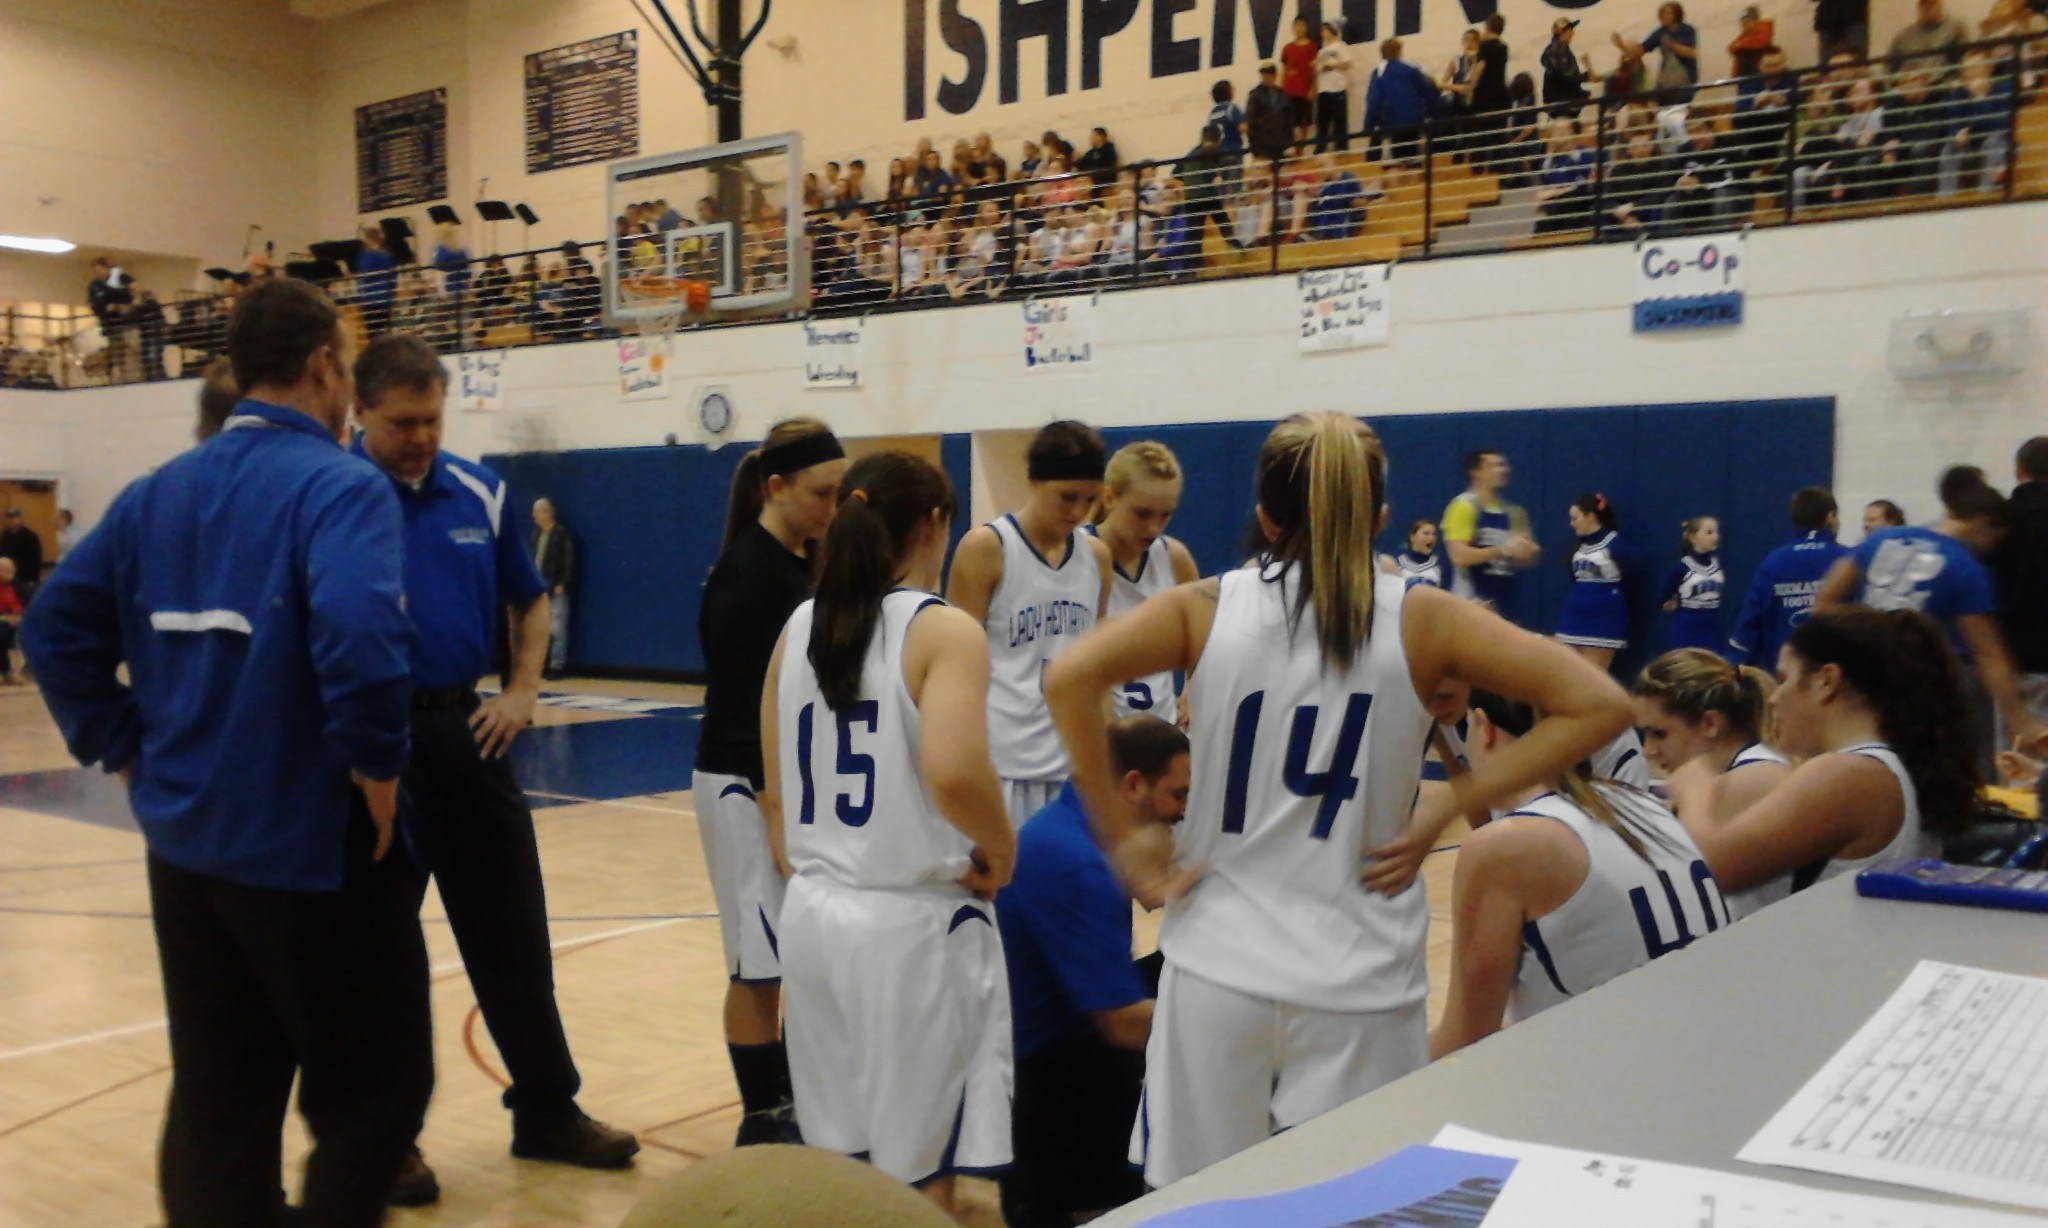 ishpeming girls Ishpeming jv girls hoops 2017-2018 added 2 new photos march 9 congratulations to varsity girls on a great season and postseason run it was pleasure to watch you represent the school and program this year.